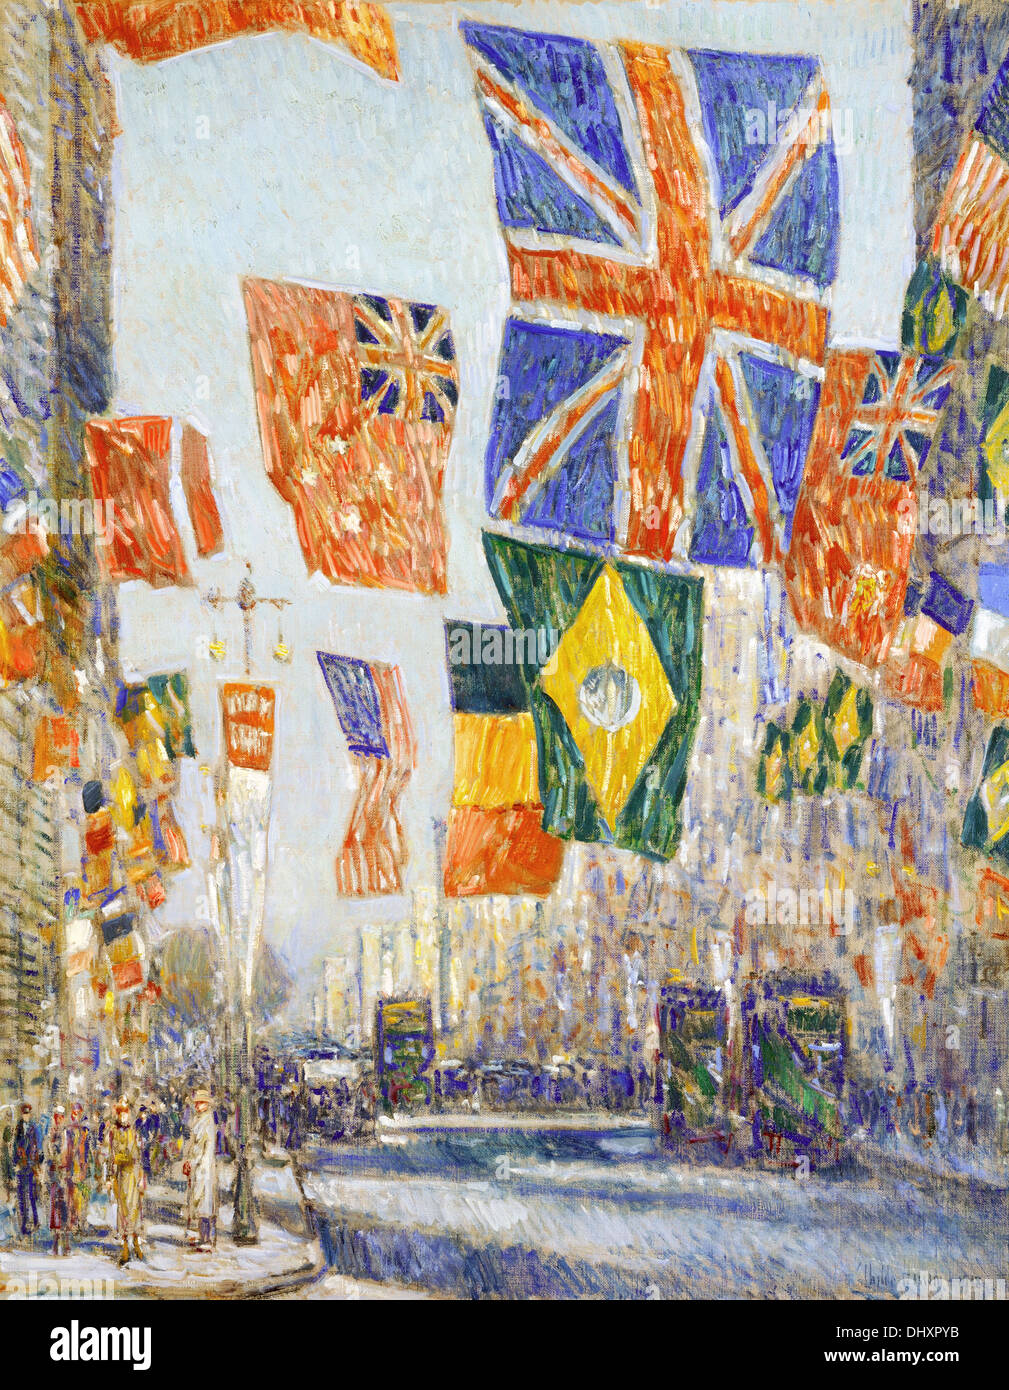 Avenue of the Allies, Great Britain - by Childe Hassam, 1918 - Stock Image